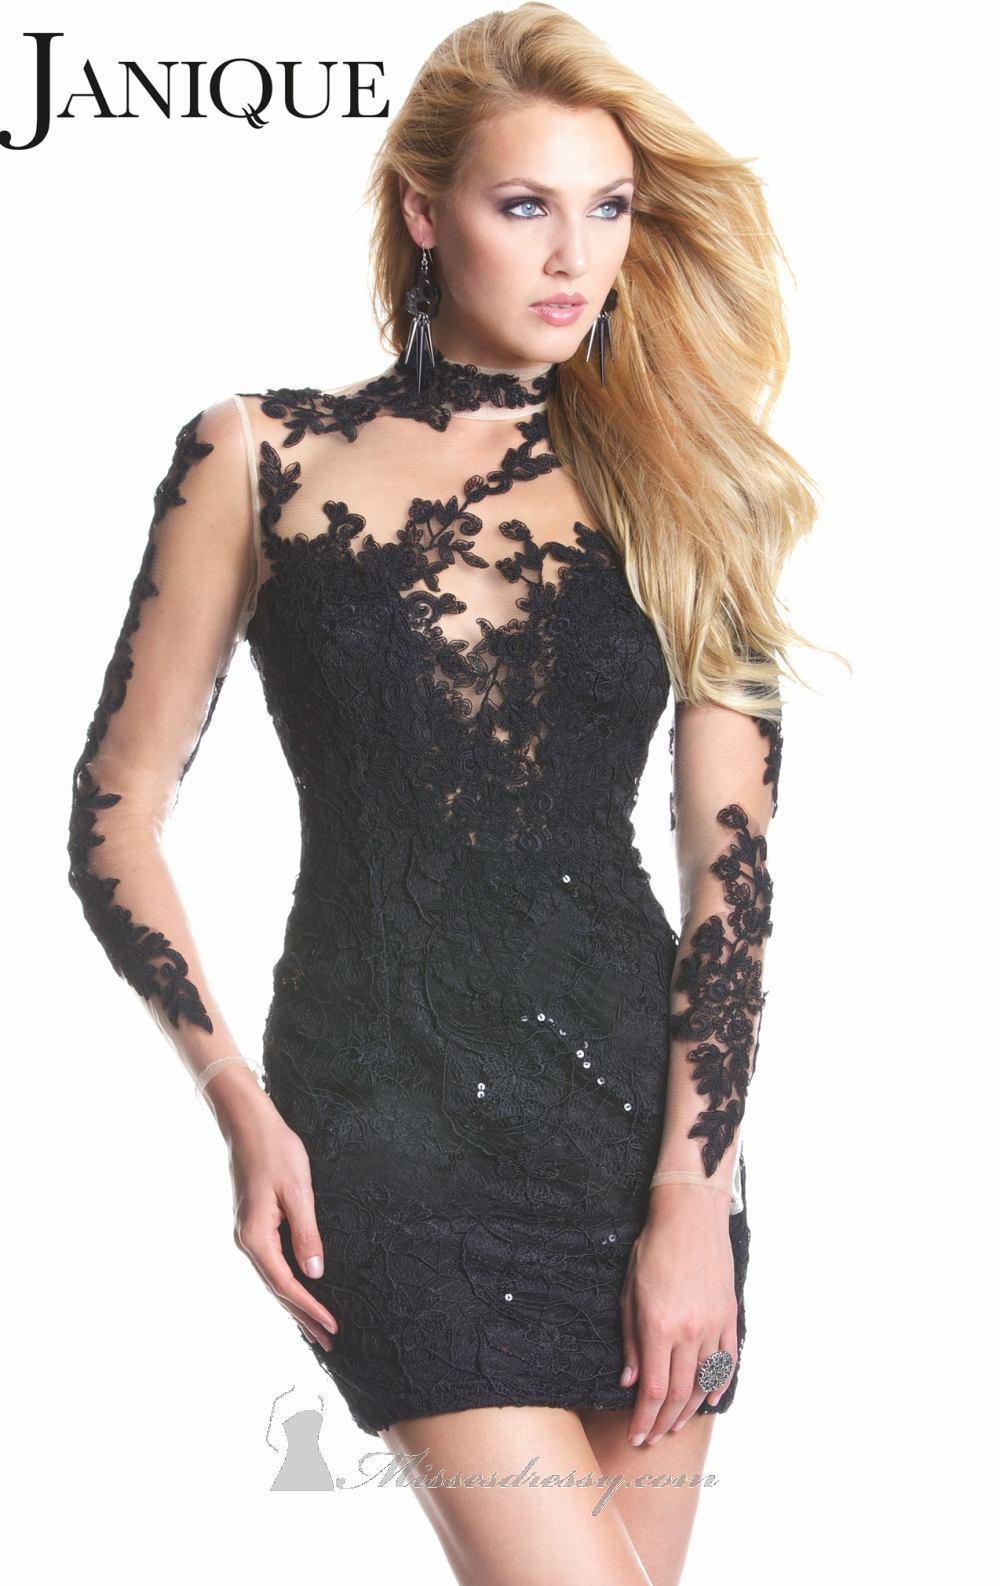 New Years Eve Dresses High Neck Backless Long Sleeve Mini 2012 Black Party Evening Cocktail Prom Cocktail Dress Men Cocktail Dress Plus Size From Fine Dresses 103 92 Dhgate Com